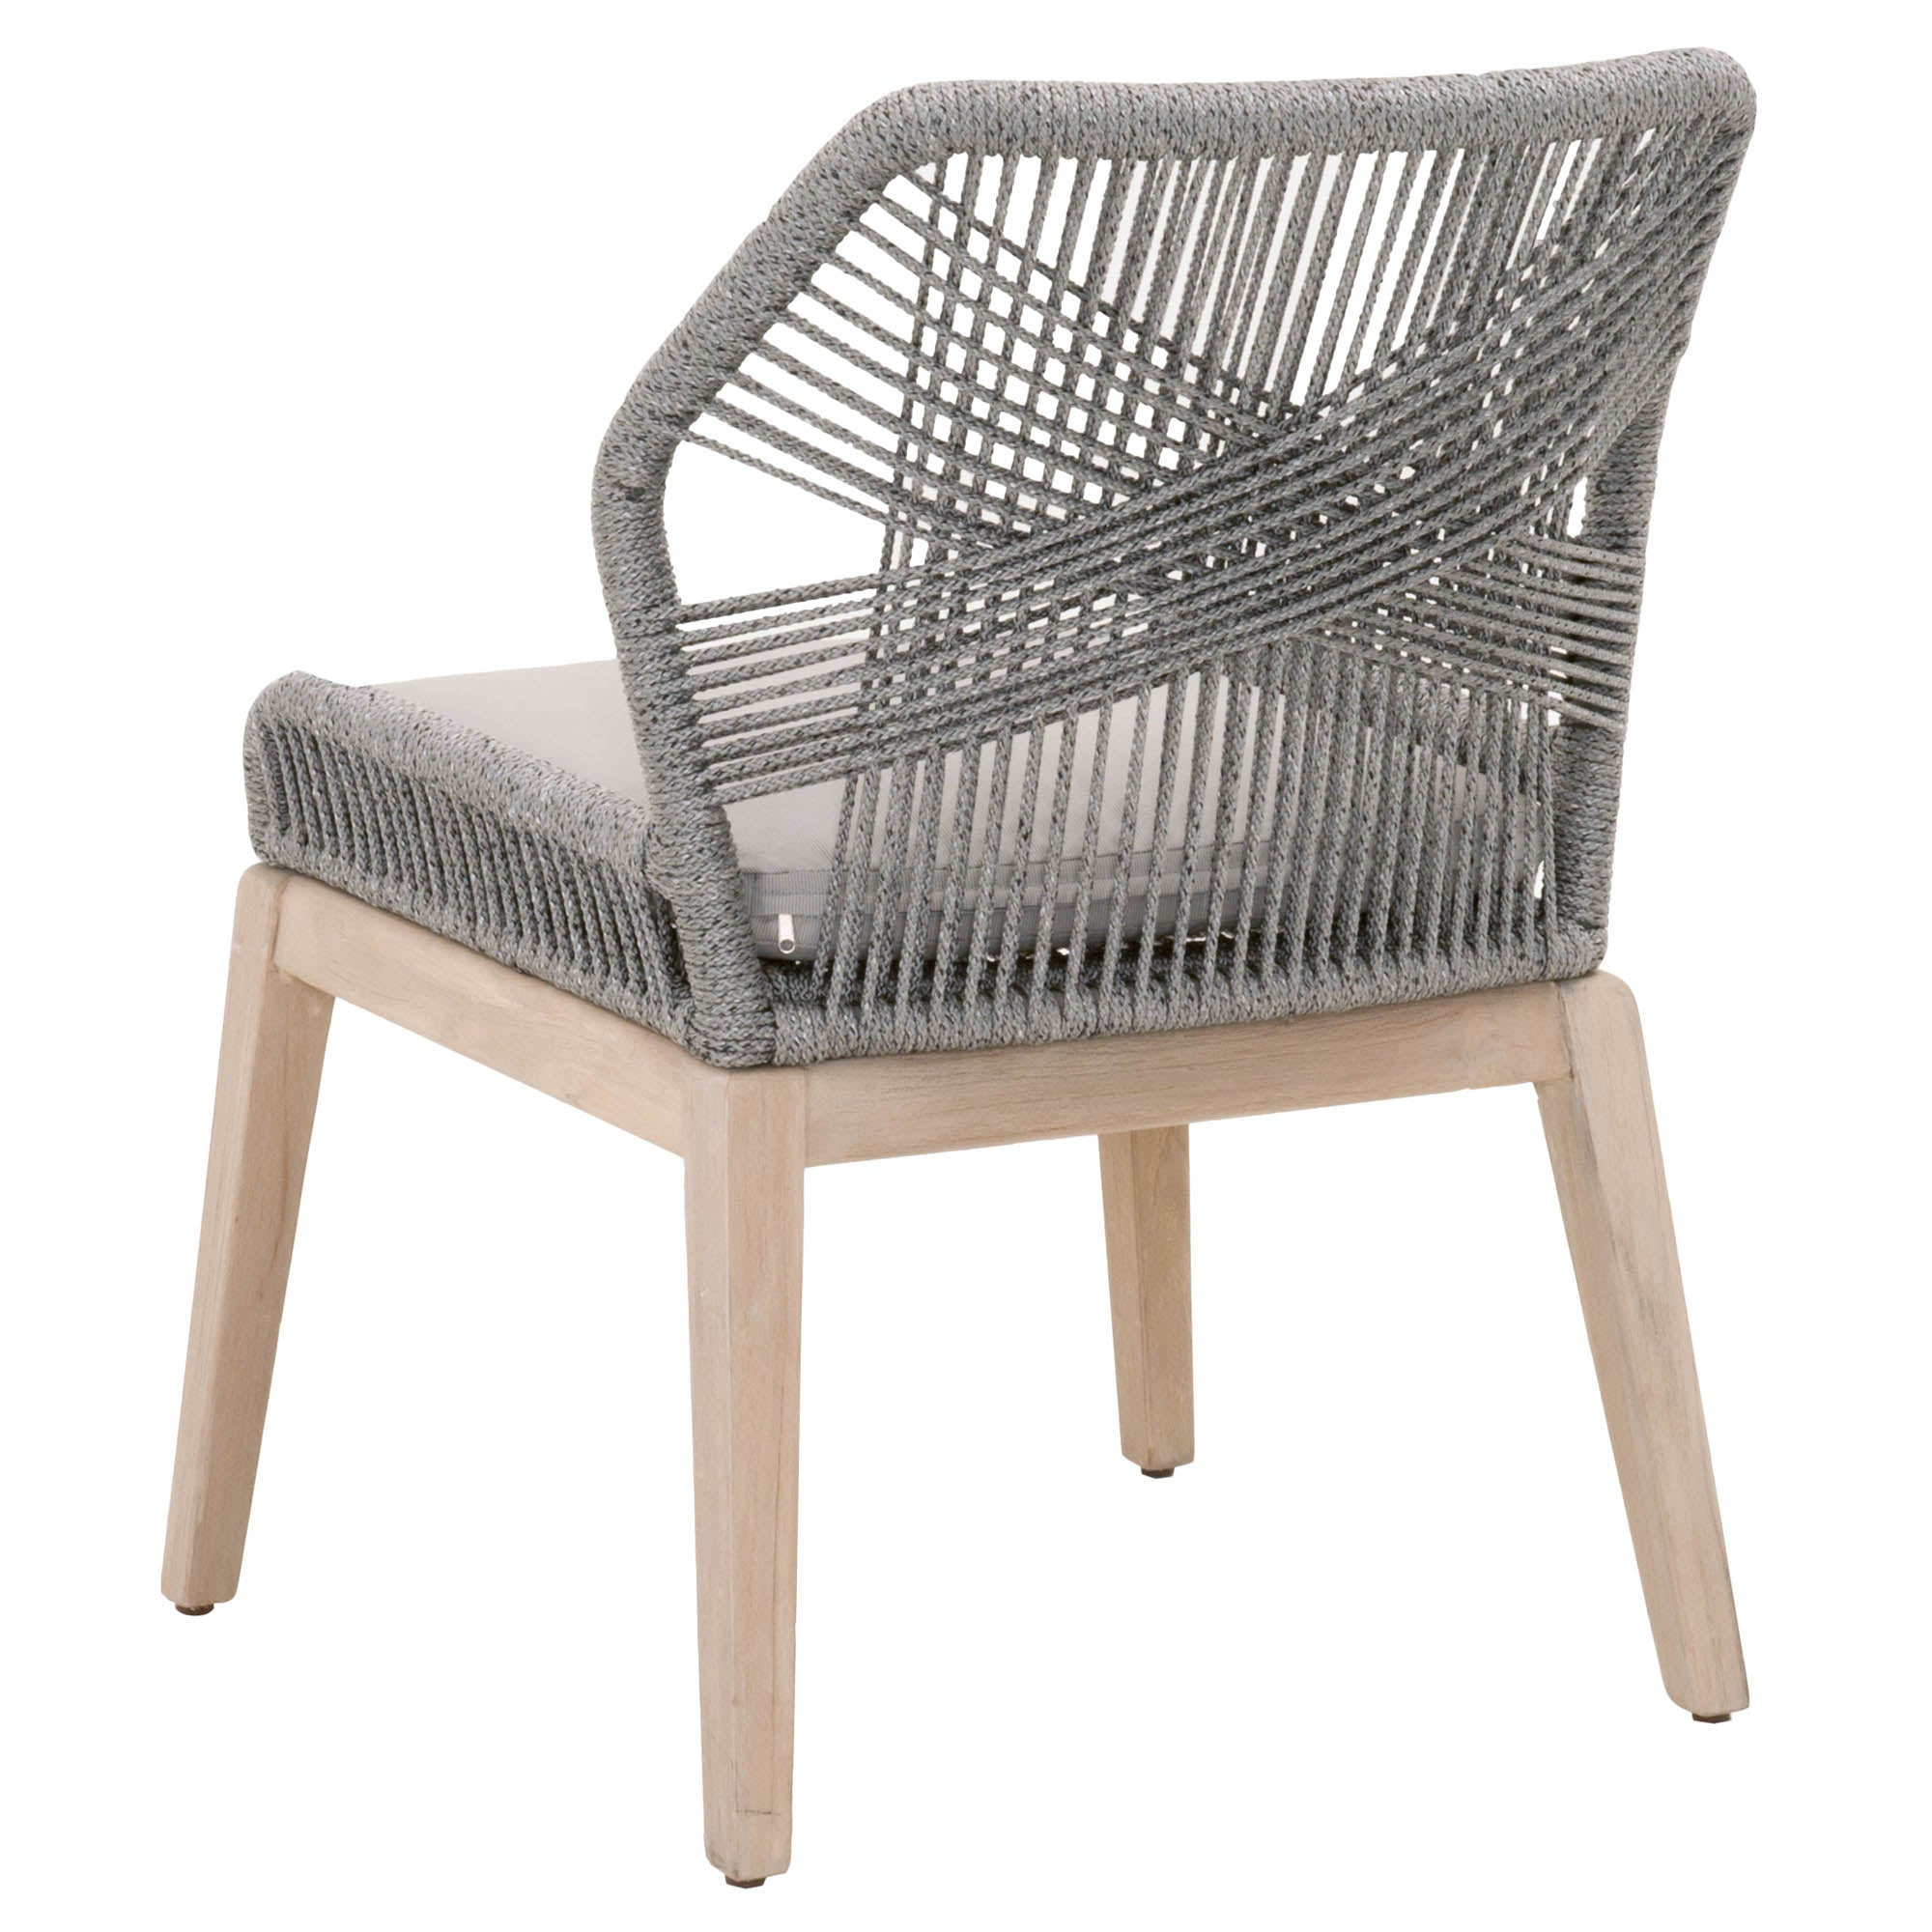 Tulum Outdoor Dining Chair